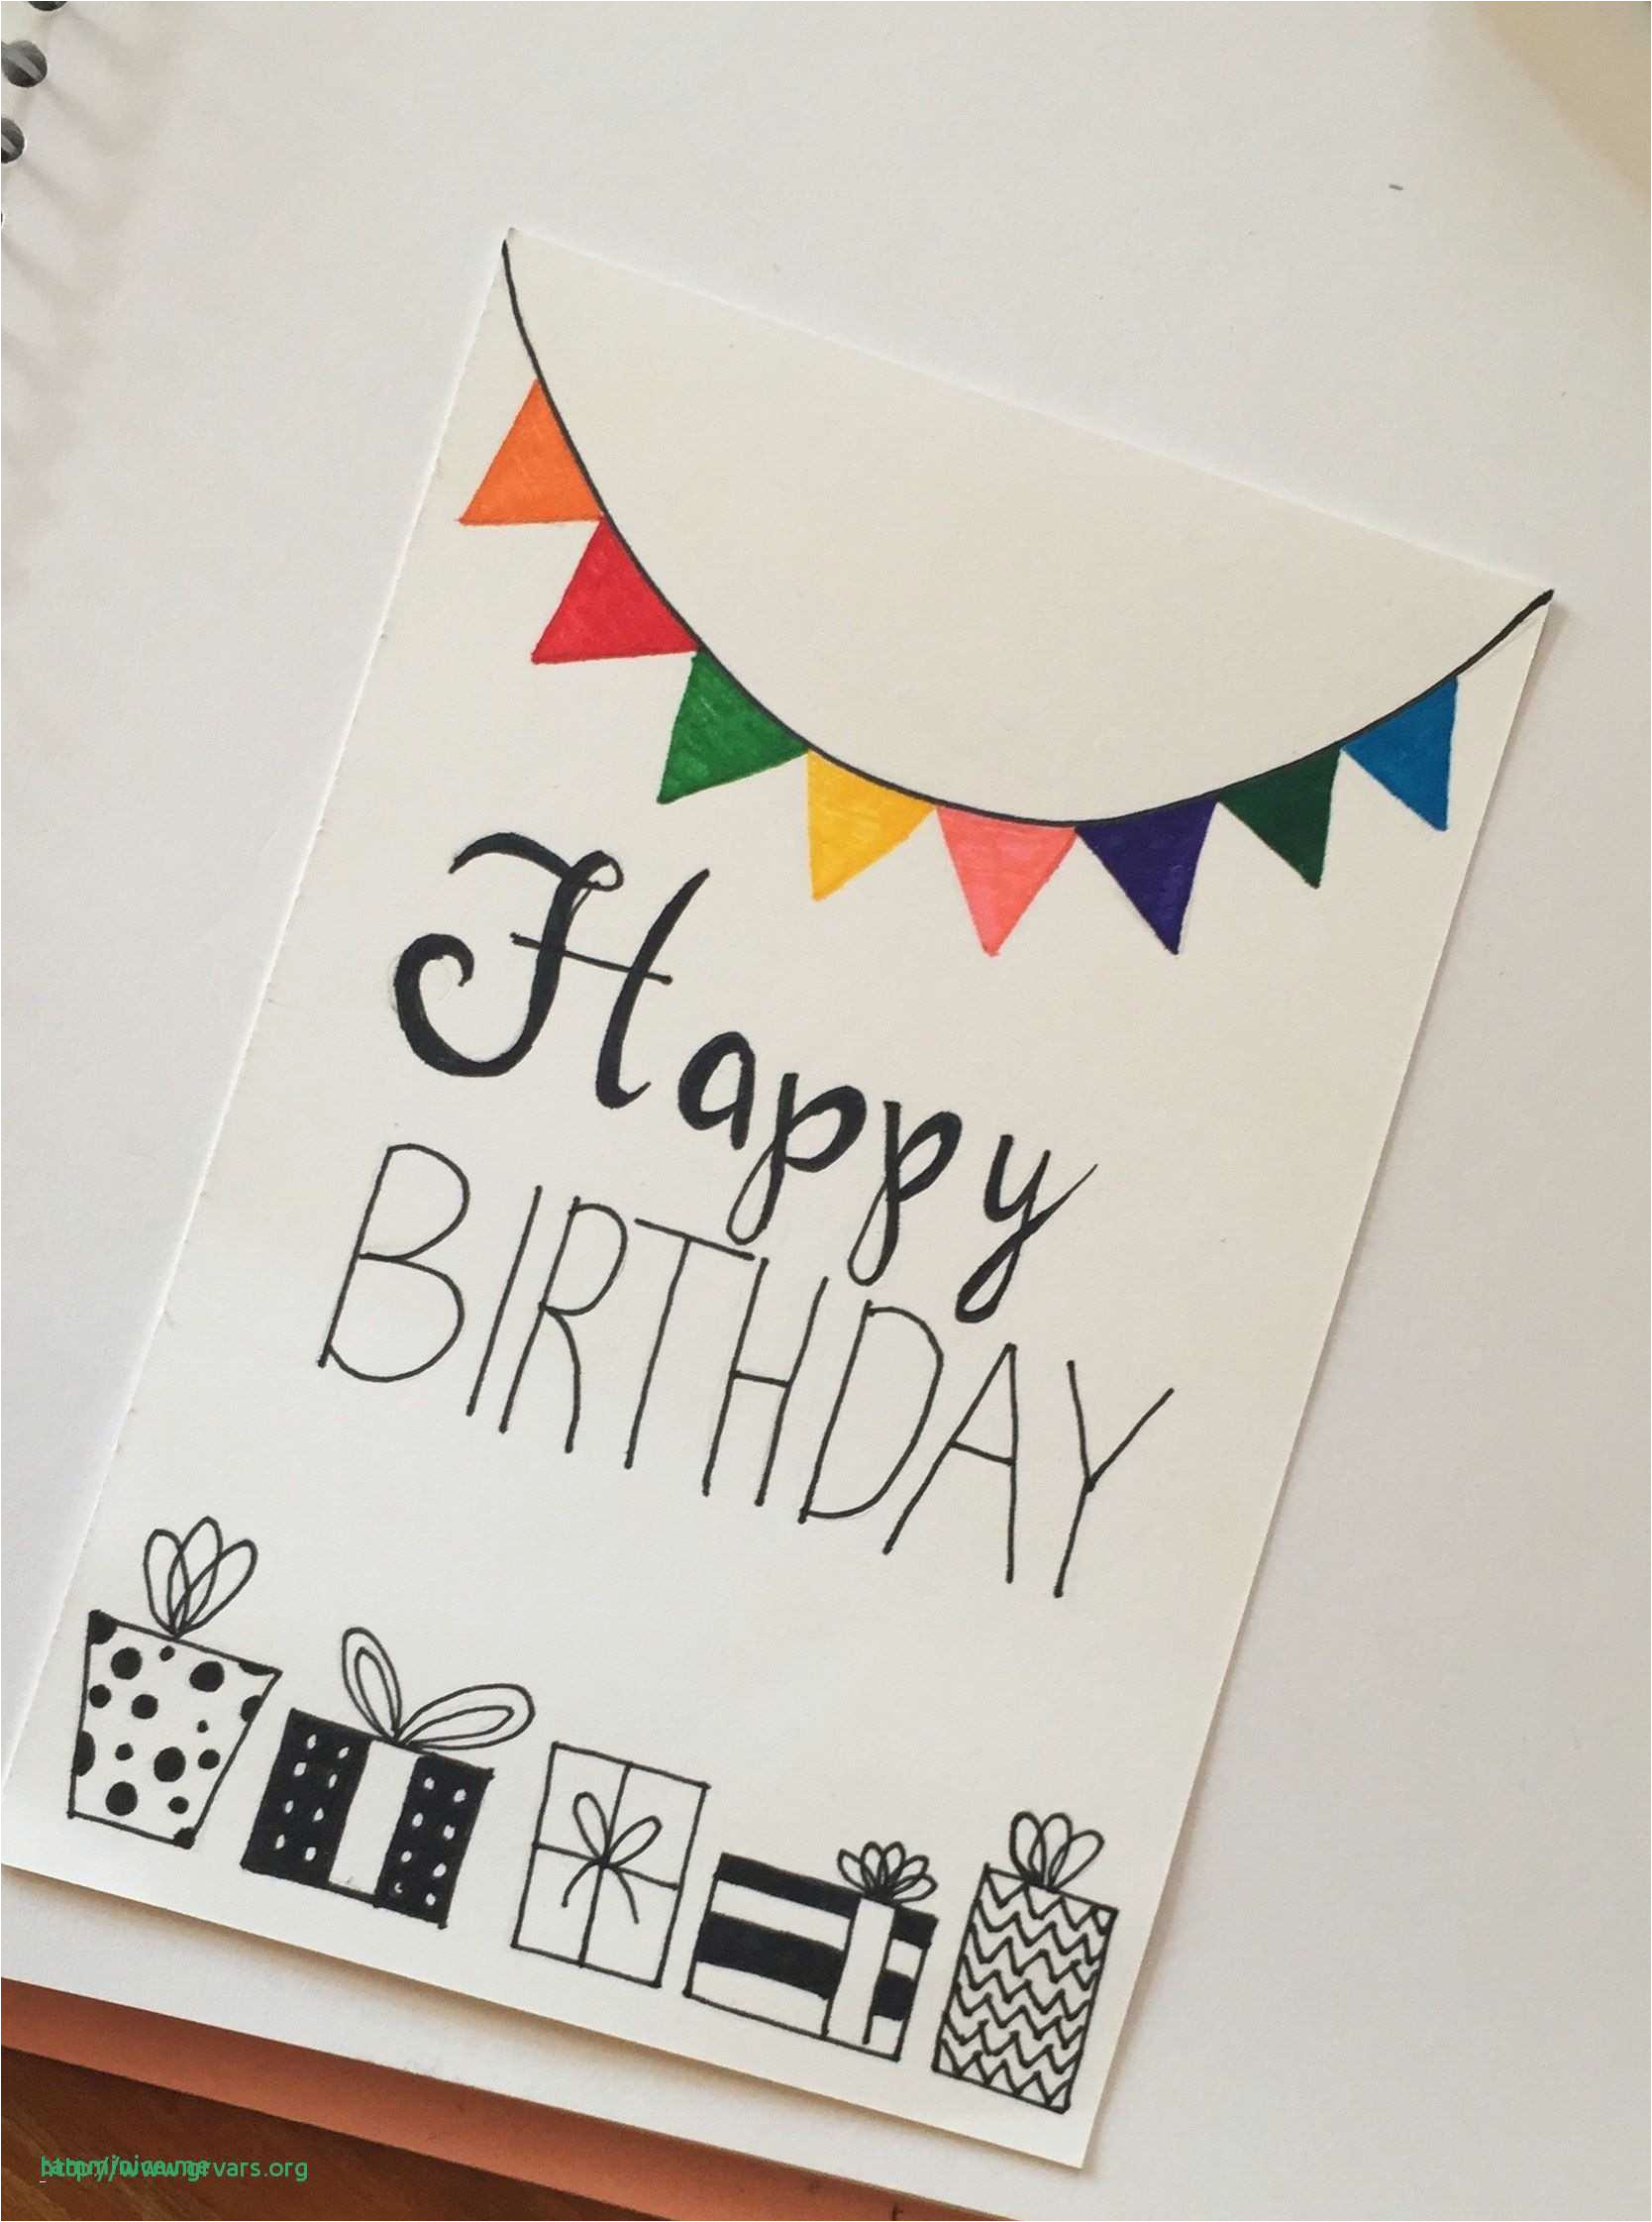 Ideas To Make A Birthday Card For A Best Friend How To Make Diy Birthday Cards For Best Friend Simple Handmade